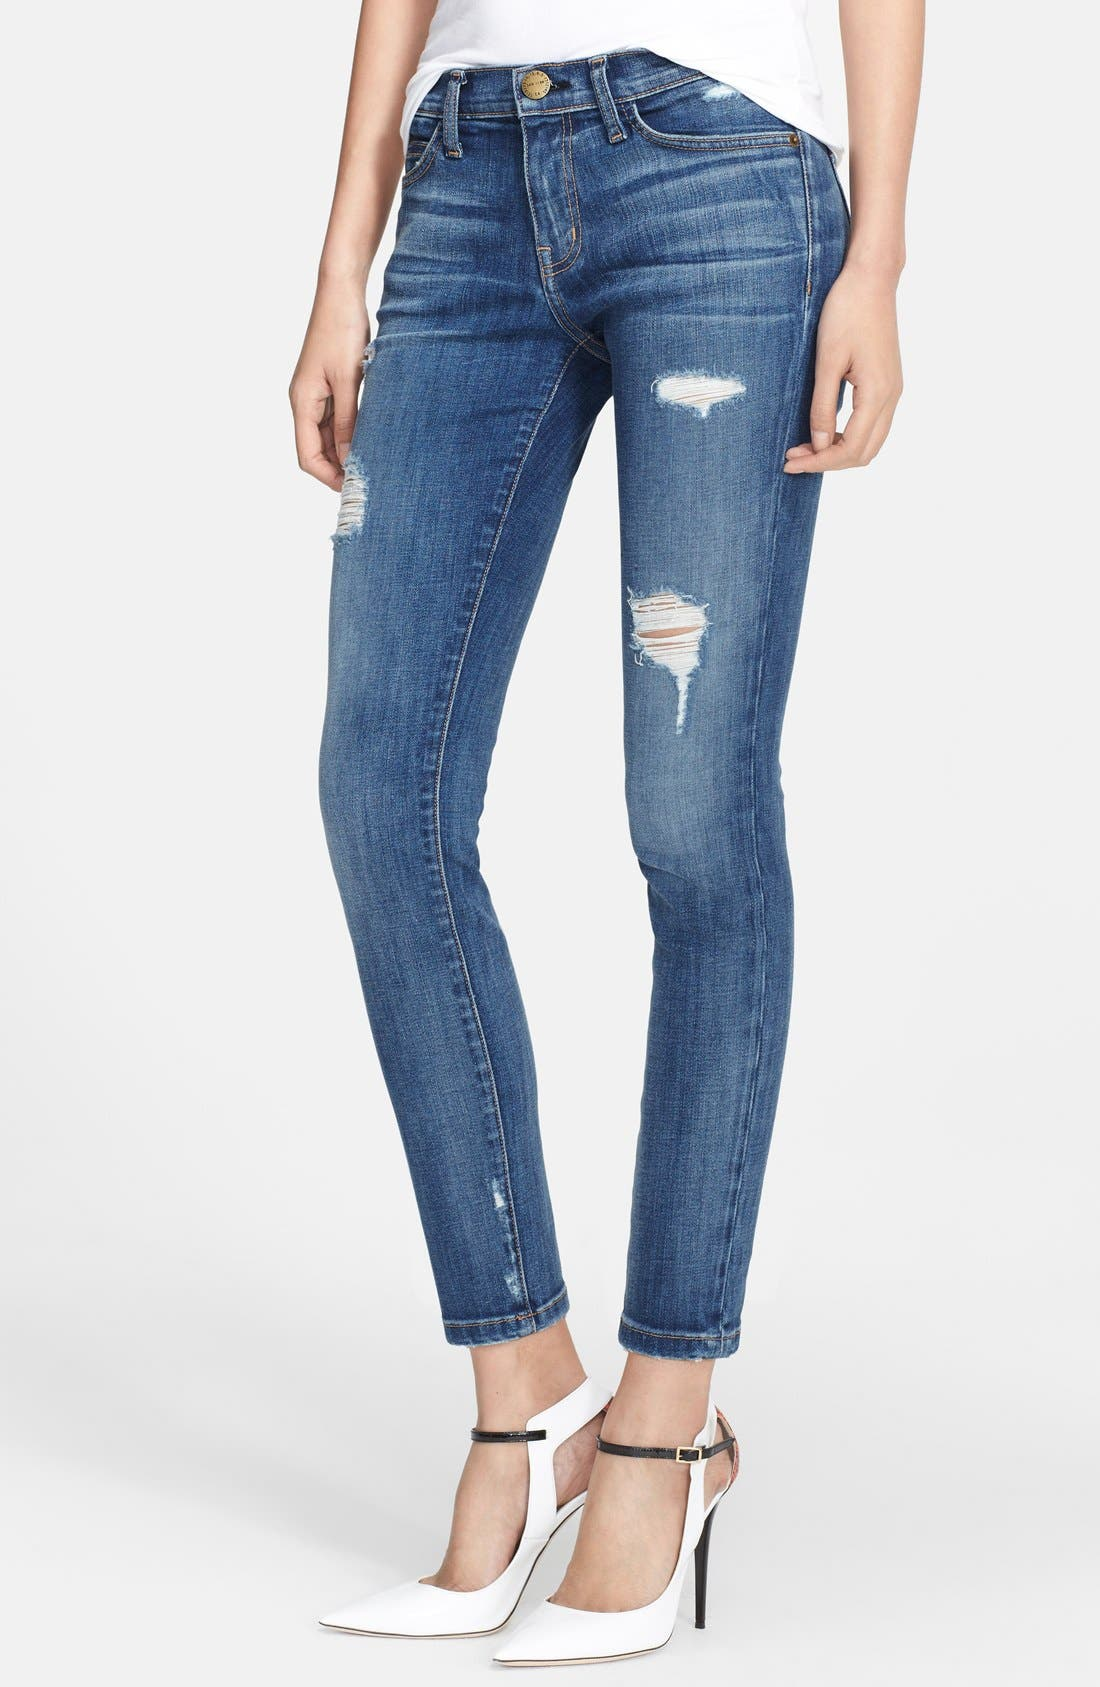 CURRENT/ELLIOTT 'The Stiletto' Destroyed Skinny Jeans